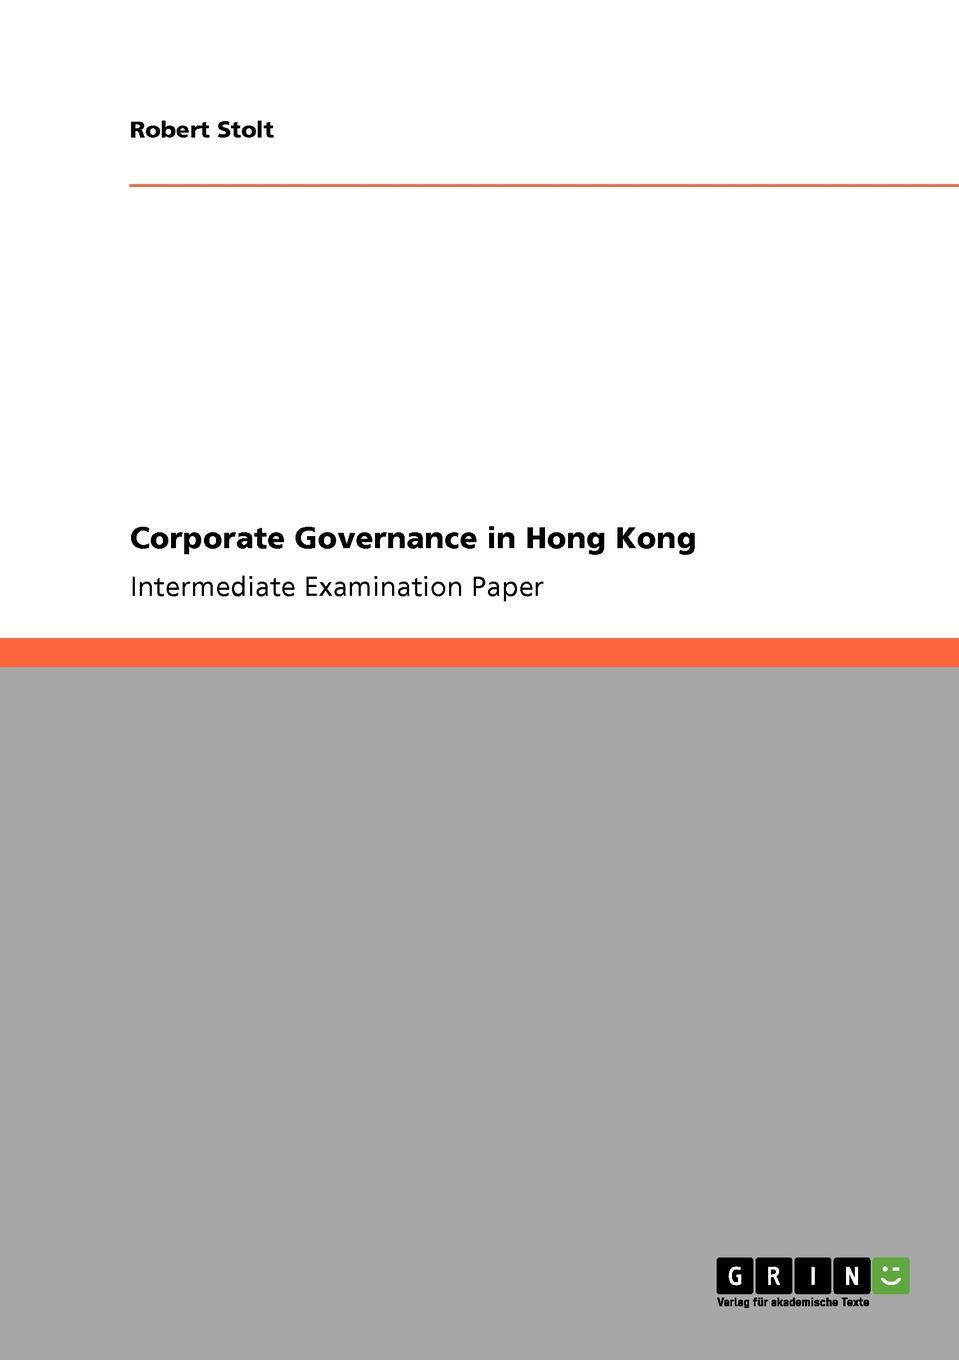 Robert Stolt Corporate Governance in Hong Kong lena lindlar hohere unternehmenswerte durch corporate governance